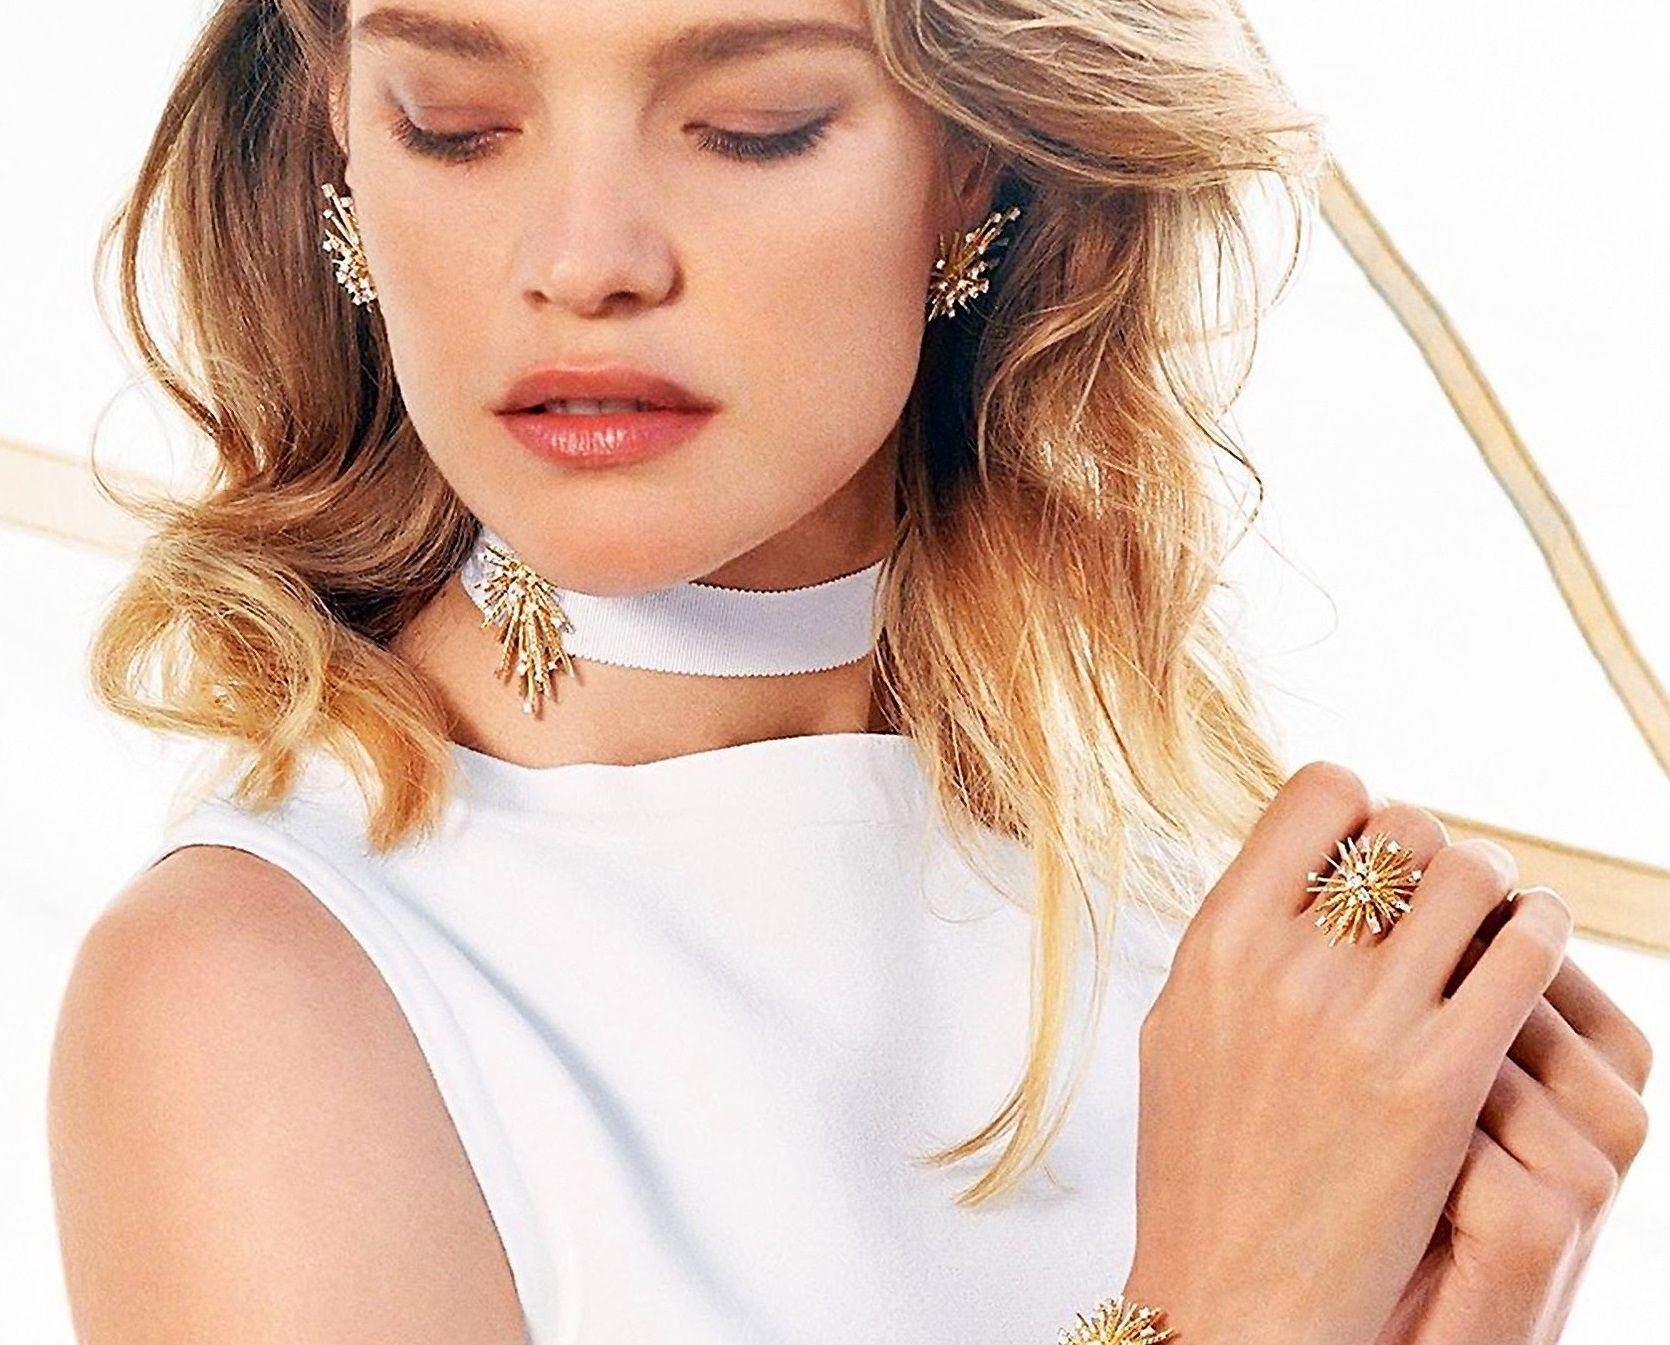 Russian fashion model Natalia Vodianova stars in David Yurman Fall Winter 2016-2017 collection., Image: 313281641, License: Rights-managed, Restrictions: EDITORIAL USE ONLY, Model Release: no, Credit line: Profimedia, Balawa Pics